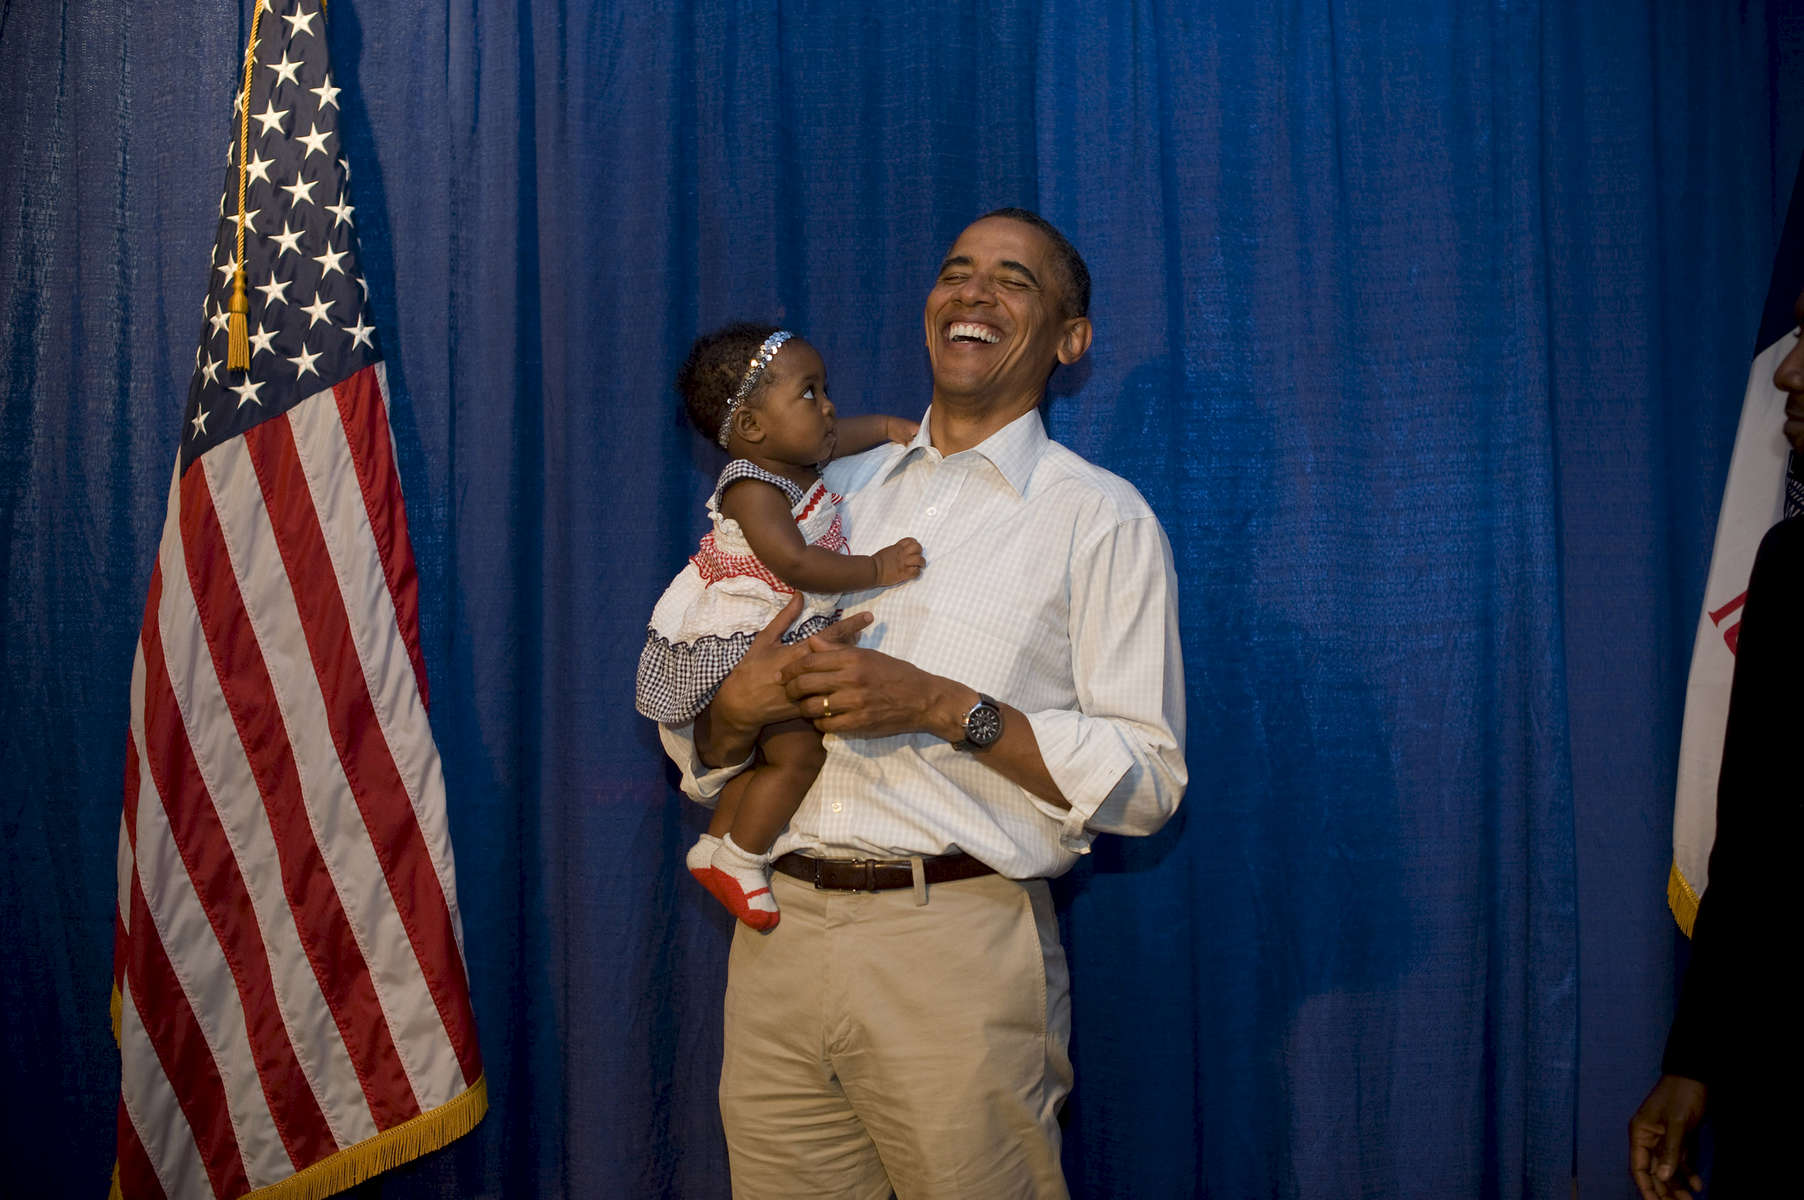 August 14th, 2012 - WATERLOO, IOWA: President Barack Obama laughs as a baby looks up at him suspiciously after an event in Waterloo, IA. (Scout Tufankjian for Obama for America/Polaris)